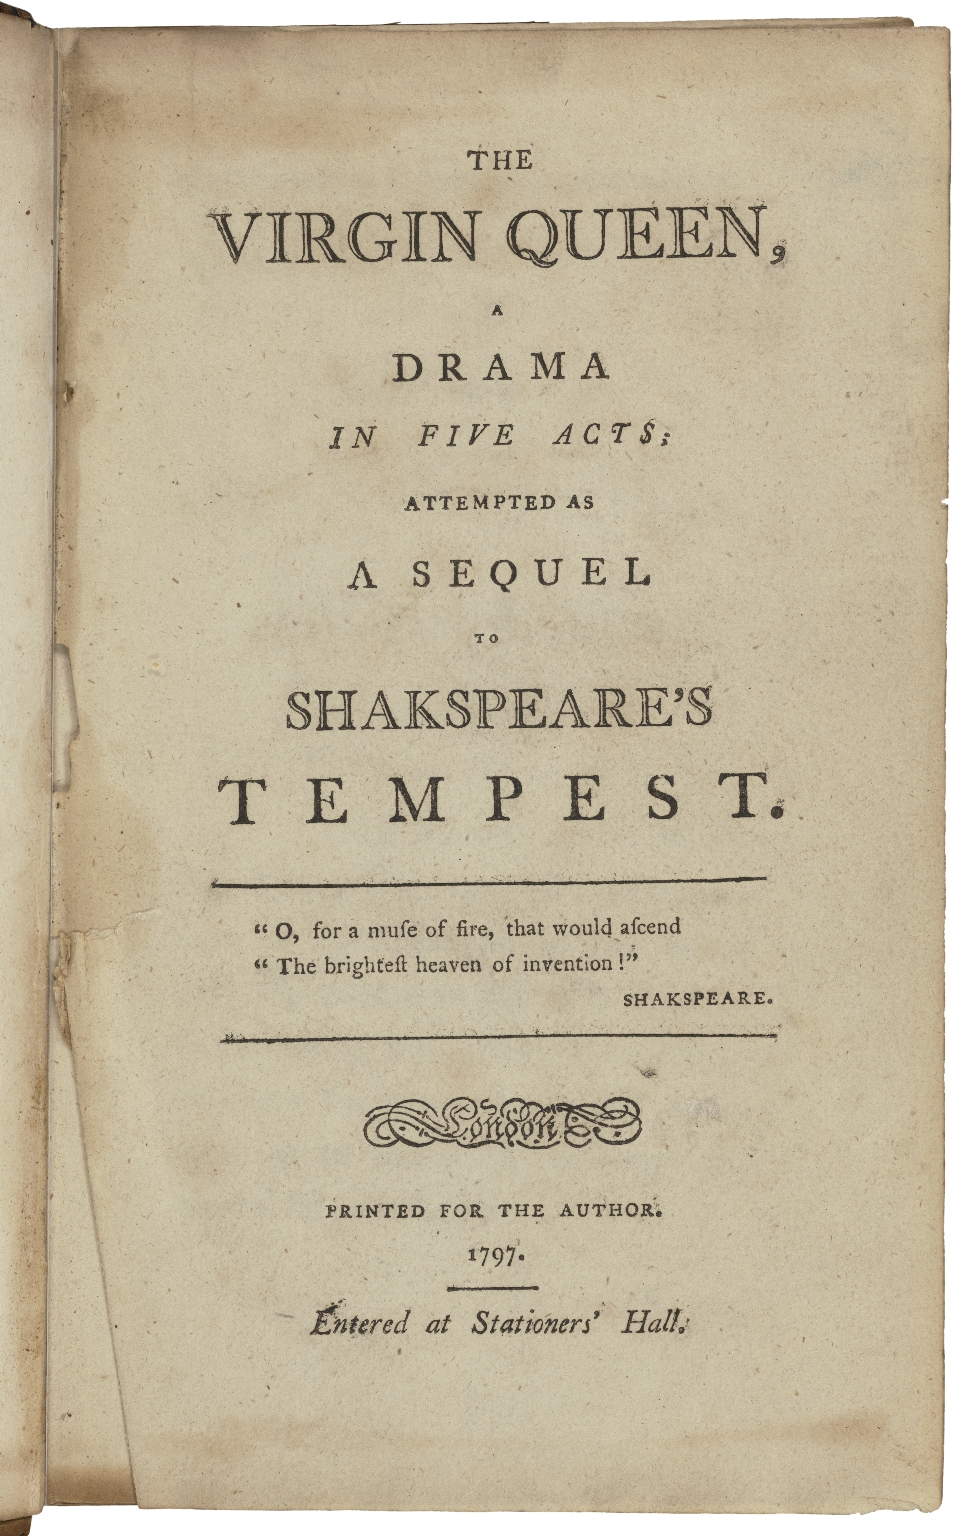 The virgin queen, a drama in five acts; attempted as a sequel to Shakespeare's Tempest